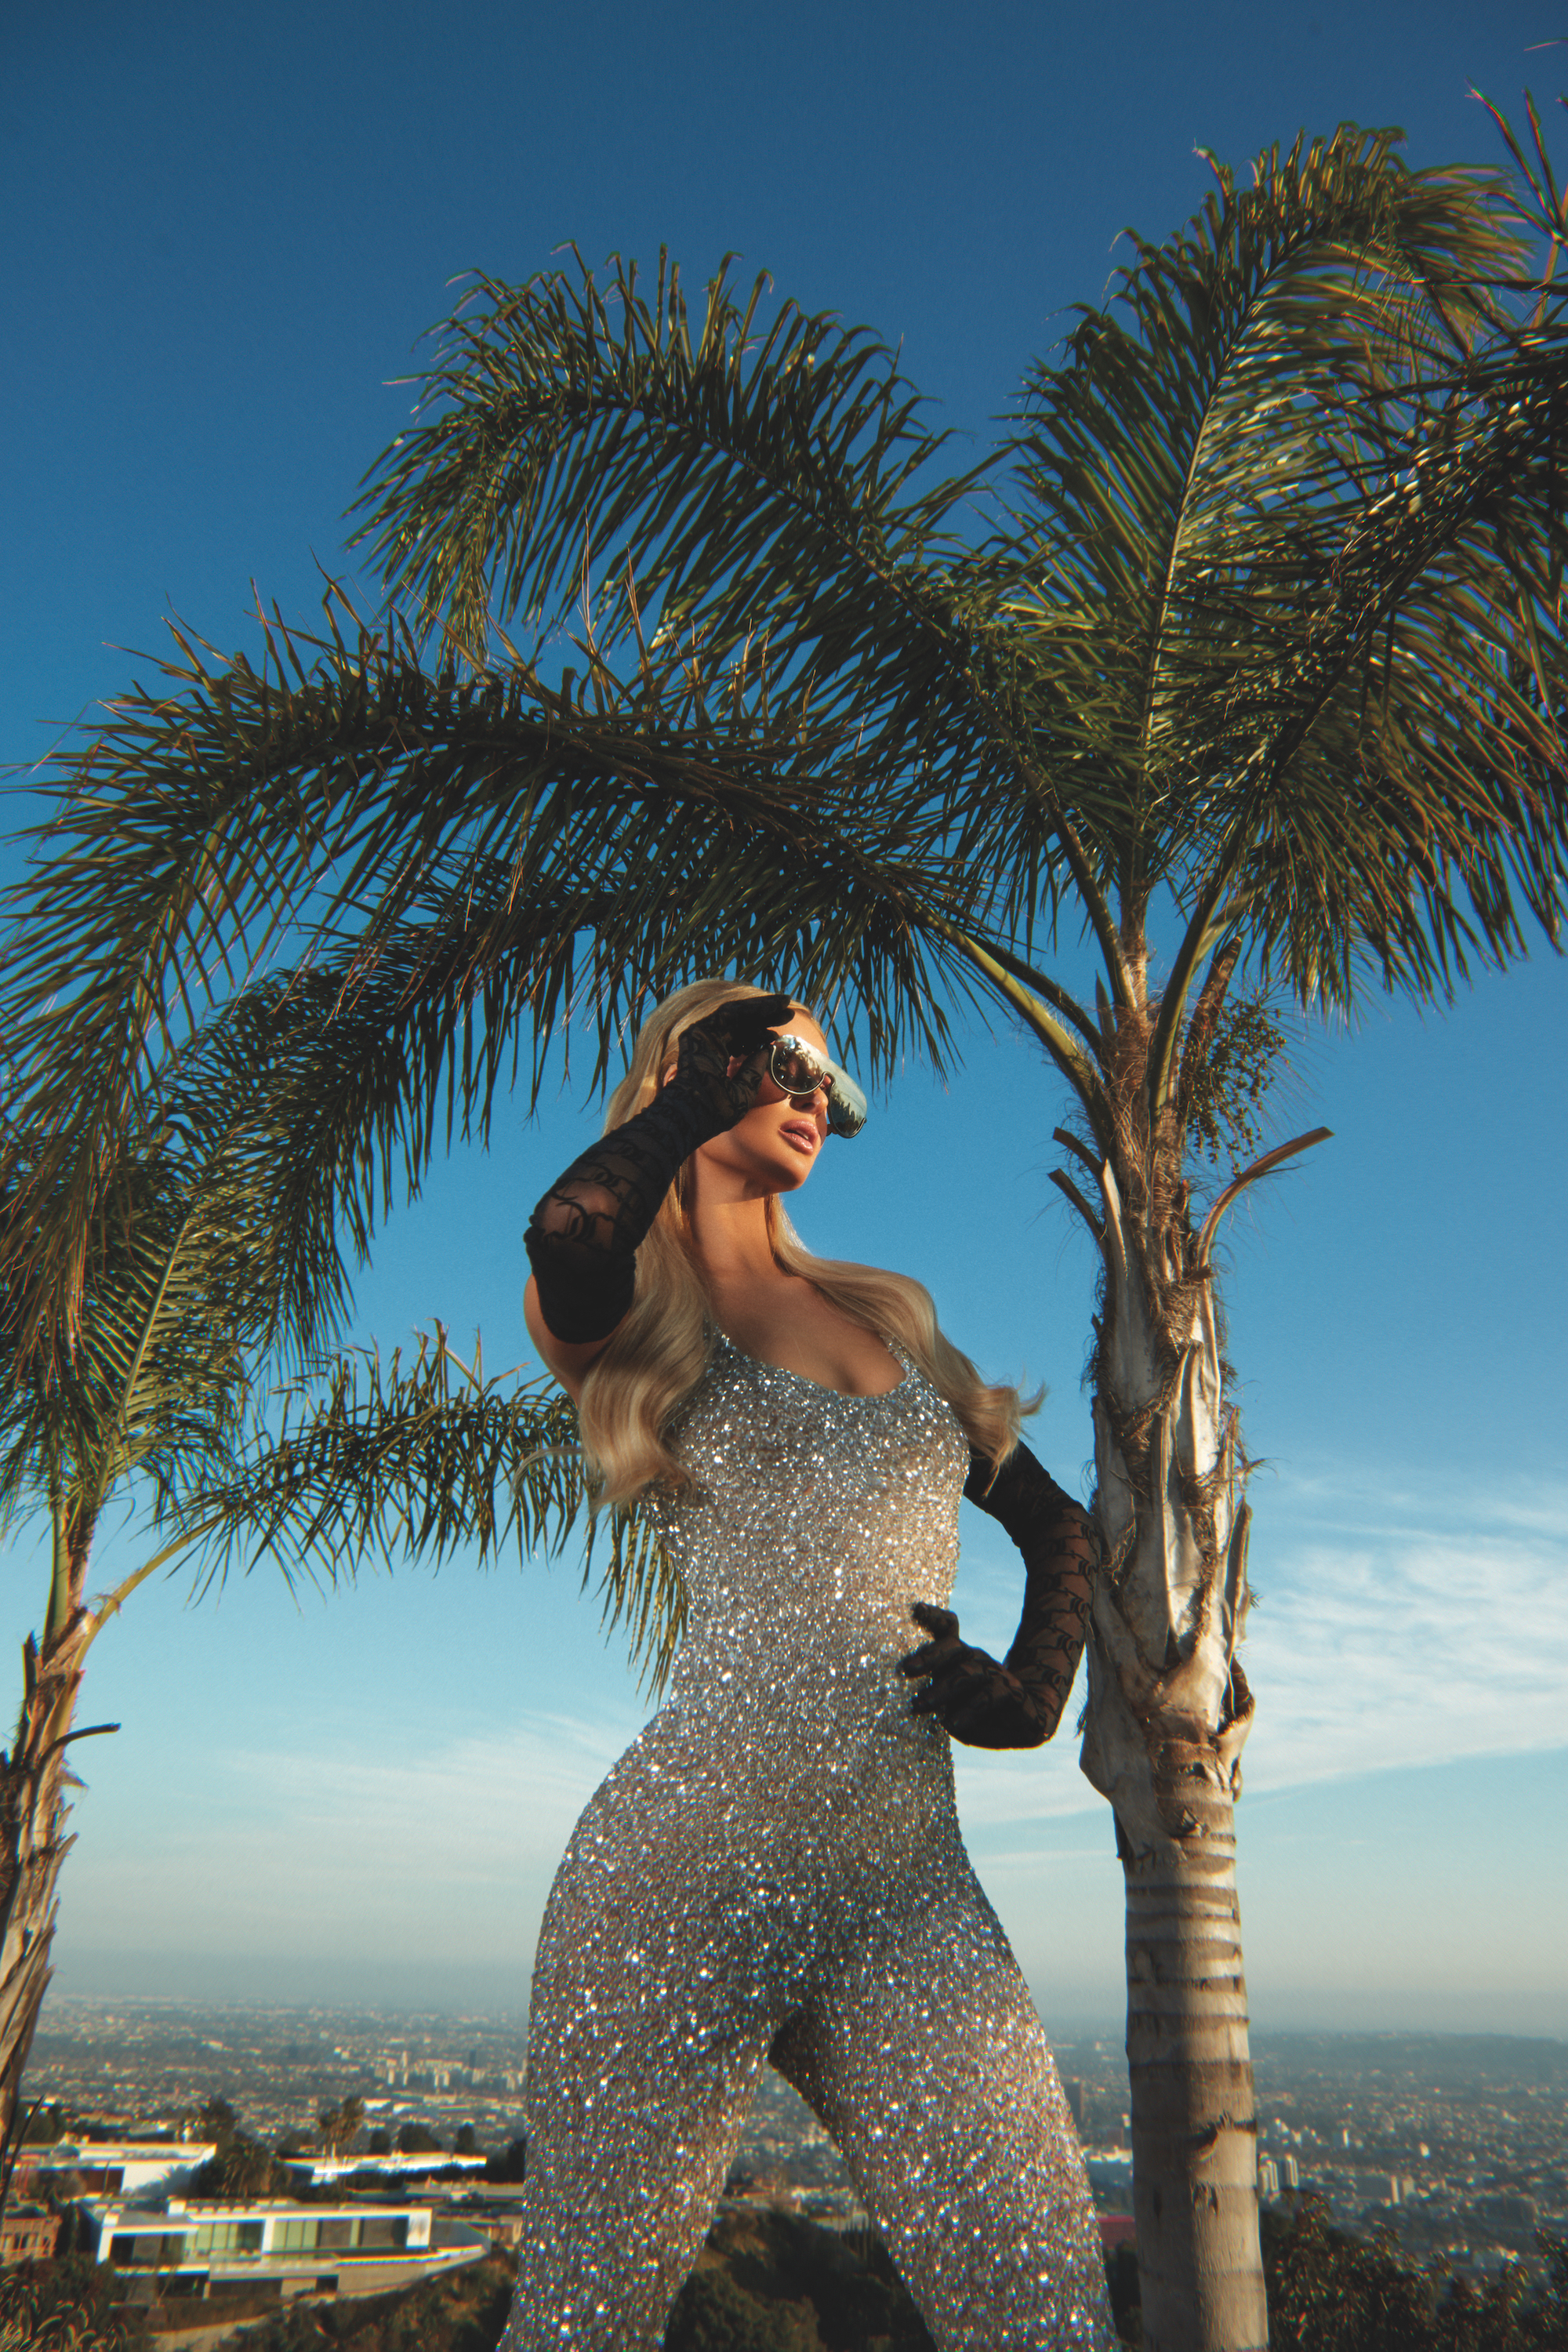 Paris Hilton interview in the Spring/Summer 2020 issue of Rollacoaster wearing Juicy Couture palm trees